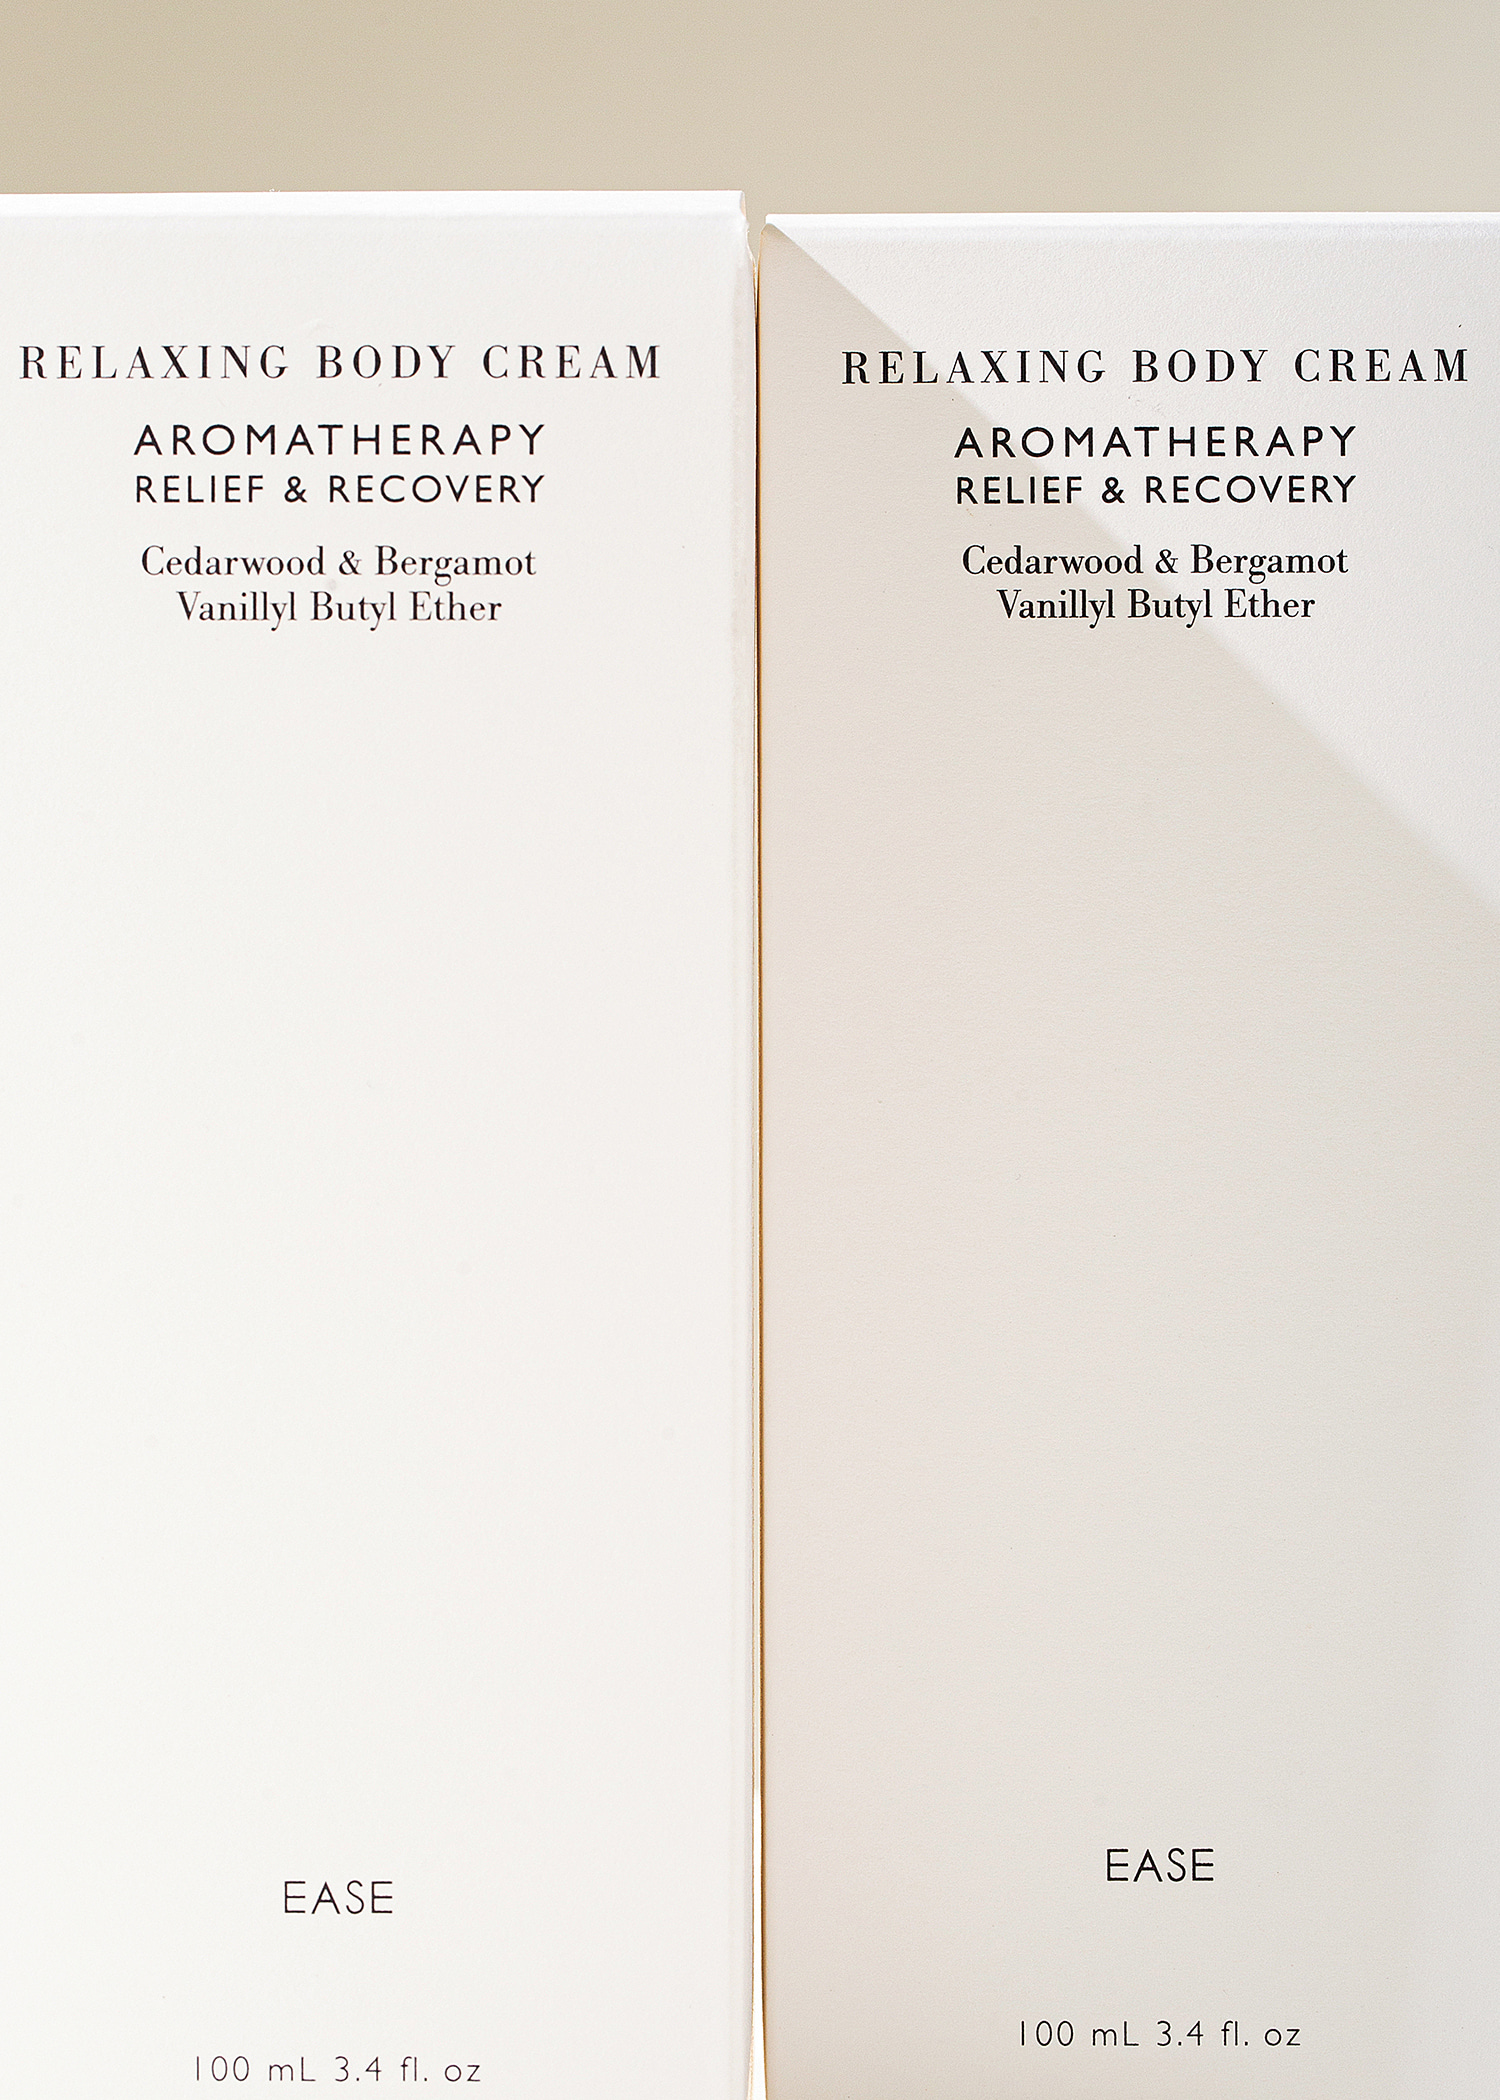 Relaxing Body Cream